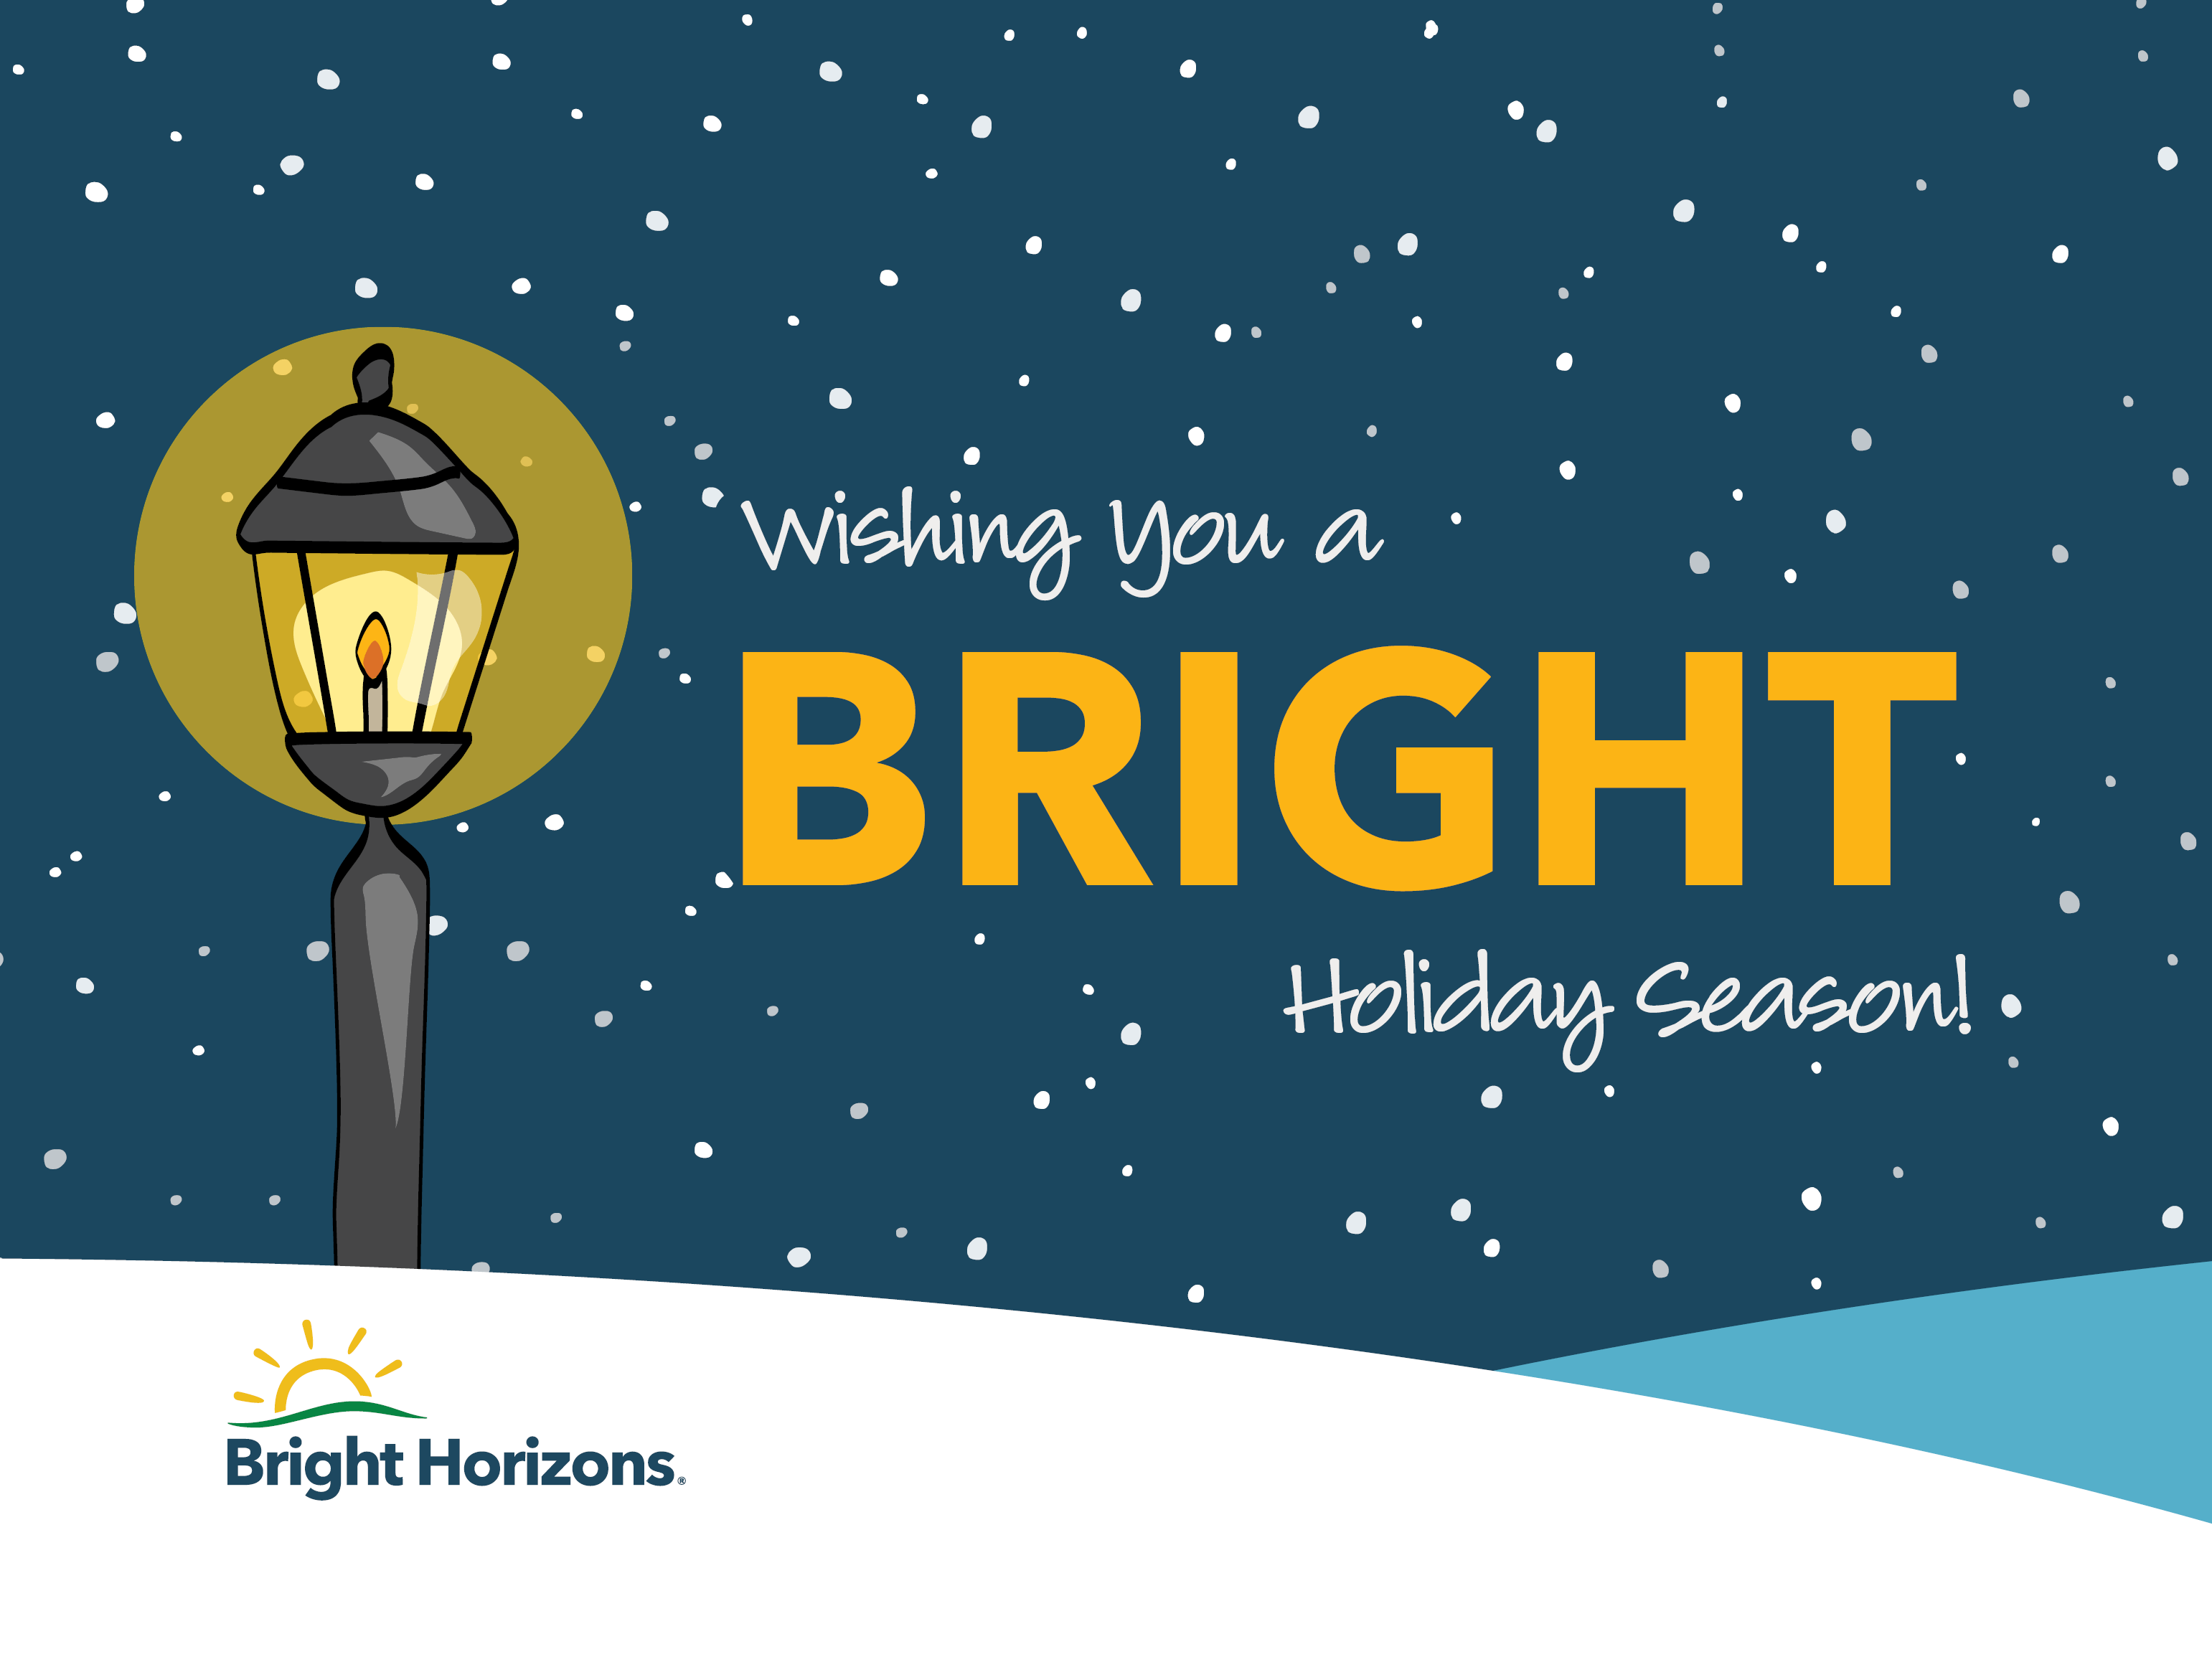 Happy Holidays graphic with a lamppost